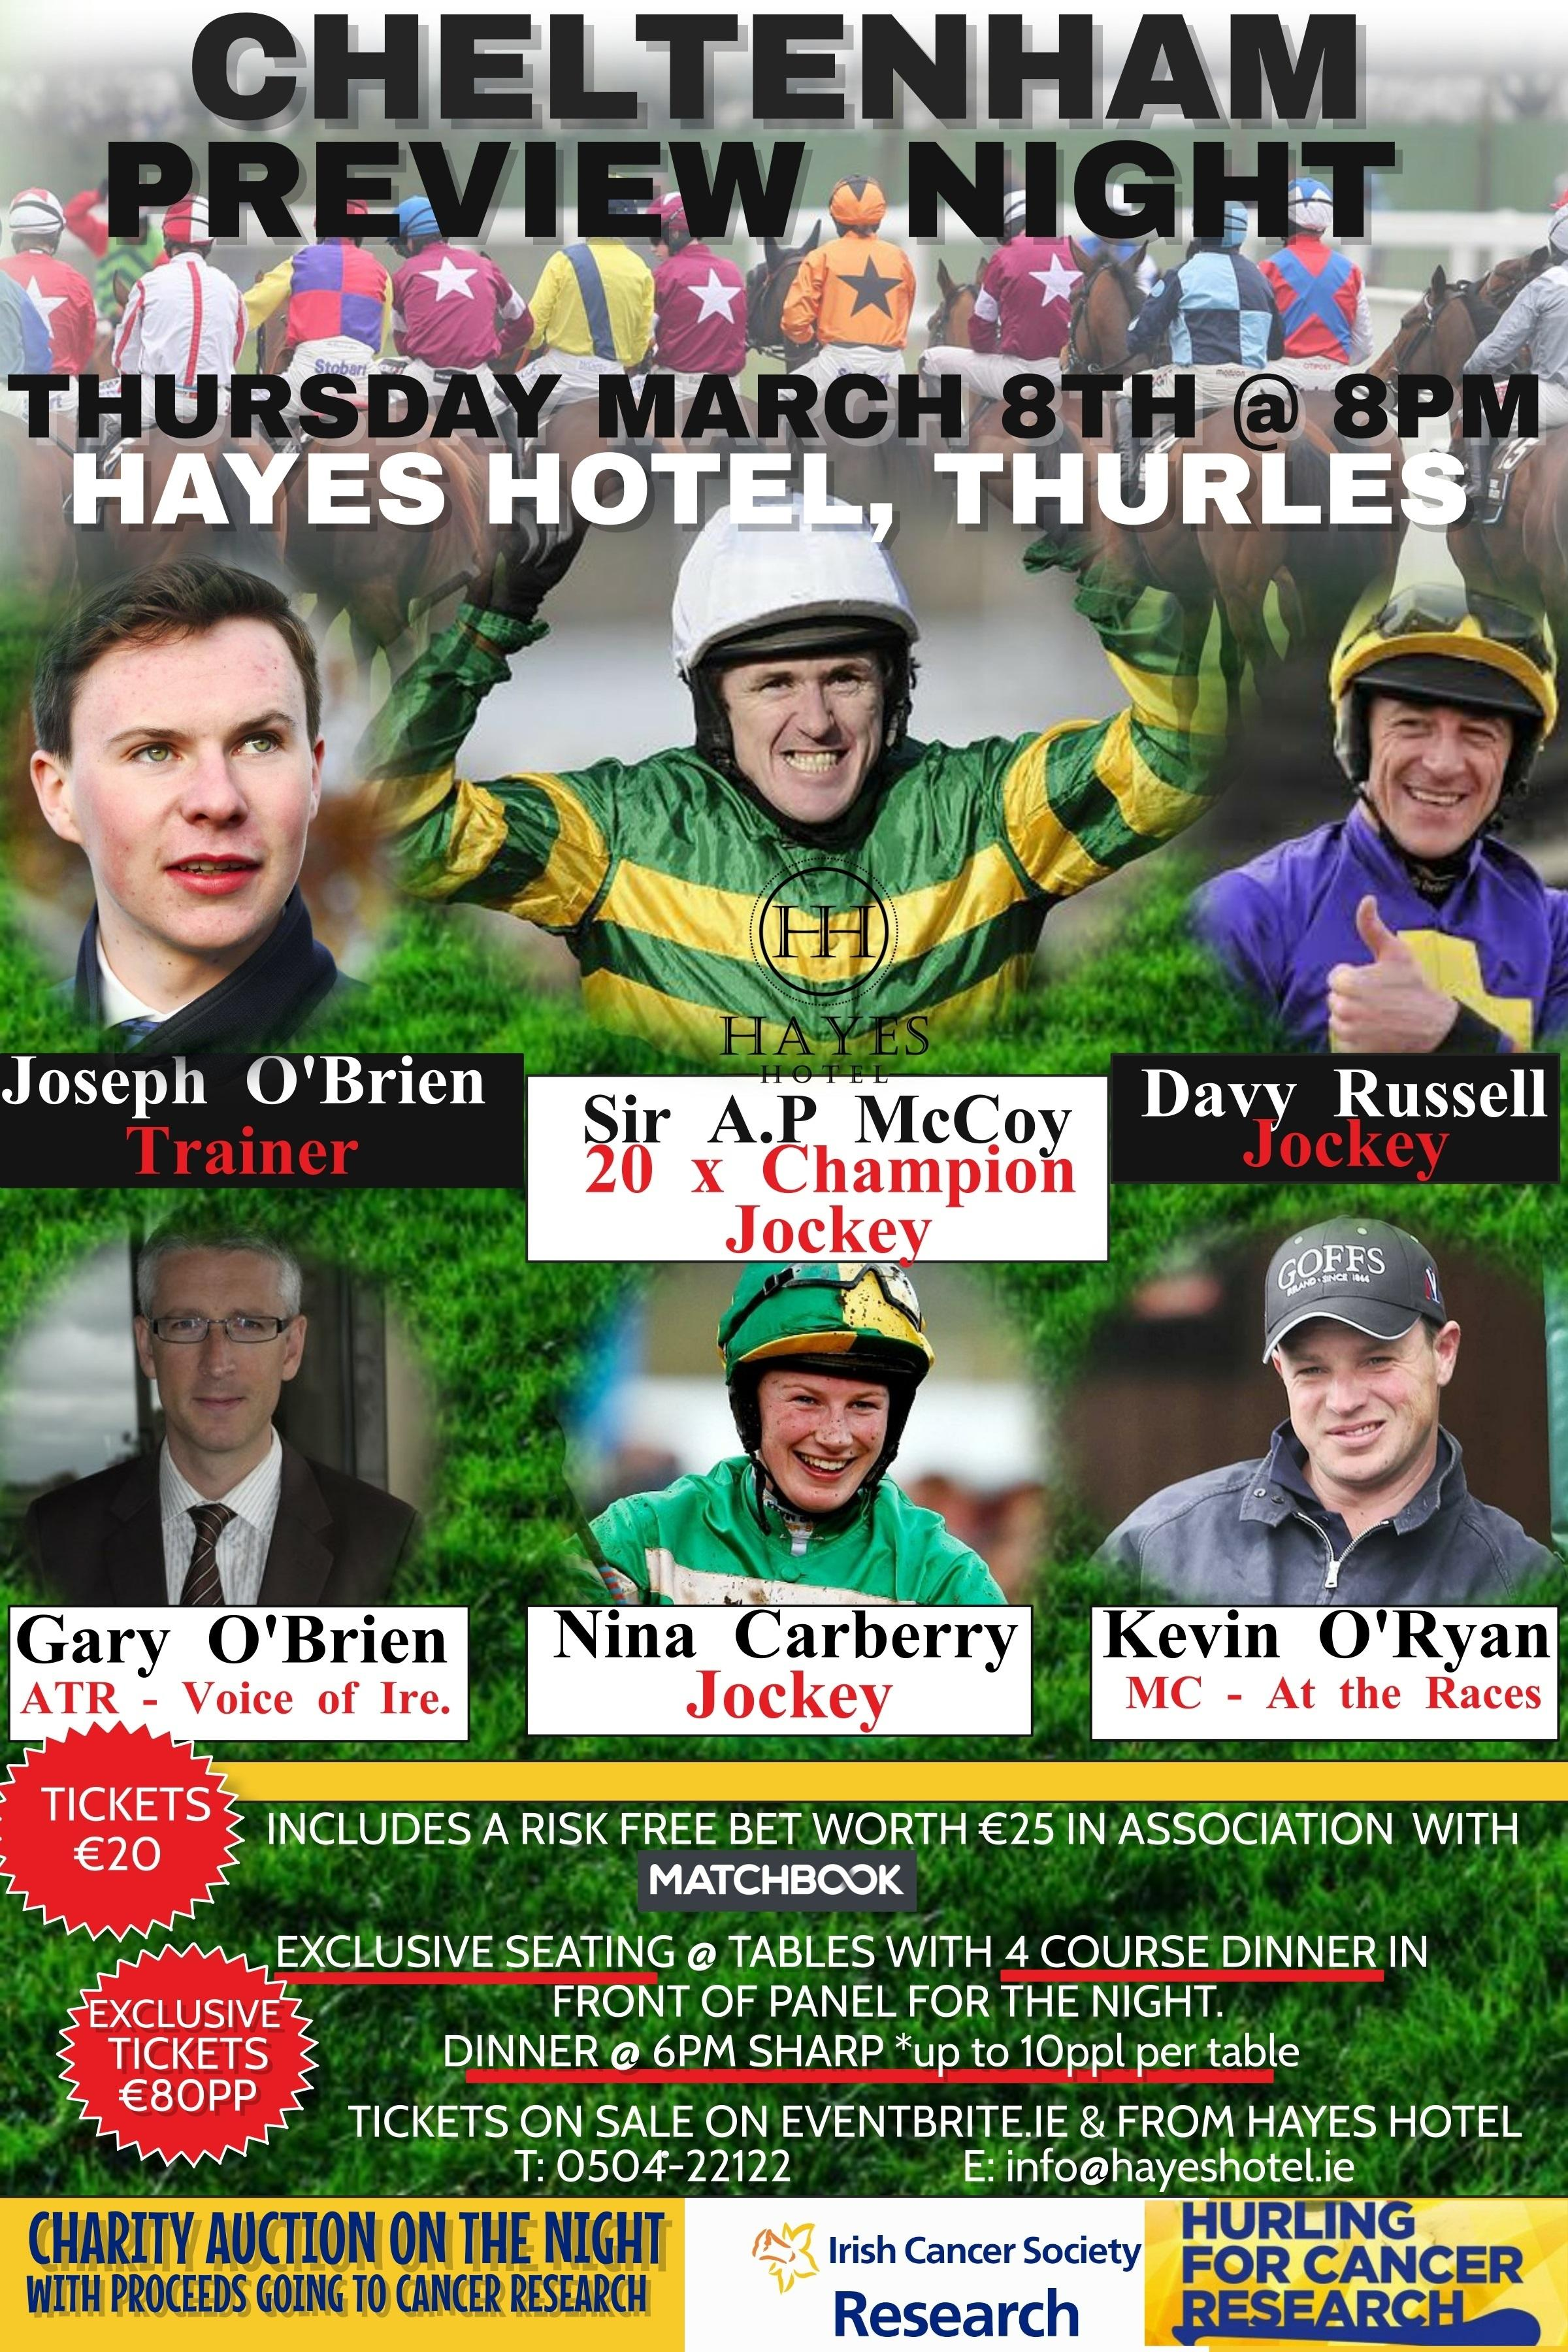 Cheltenham Preview Night @ Hayes Hotel